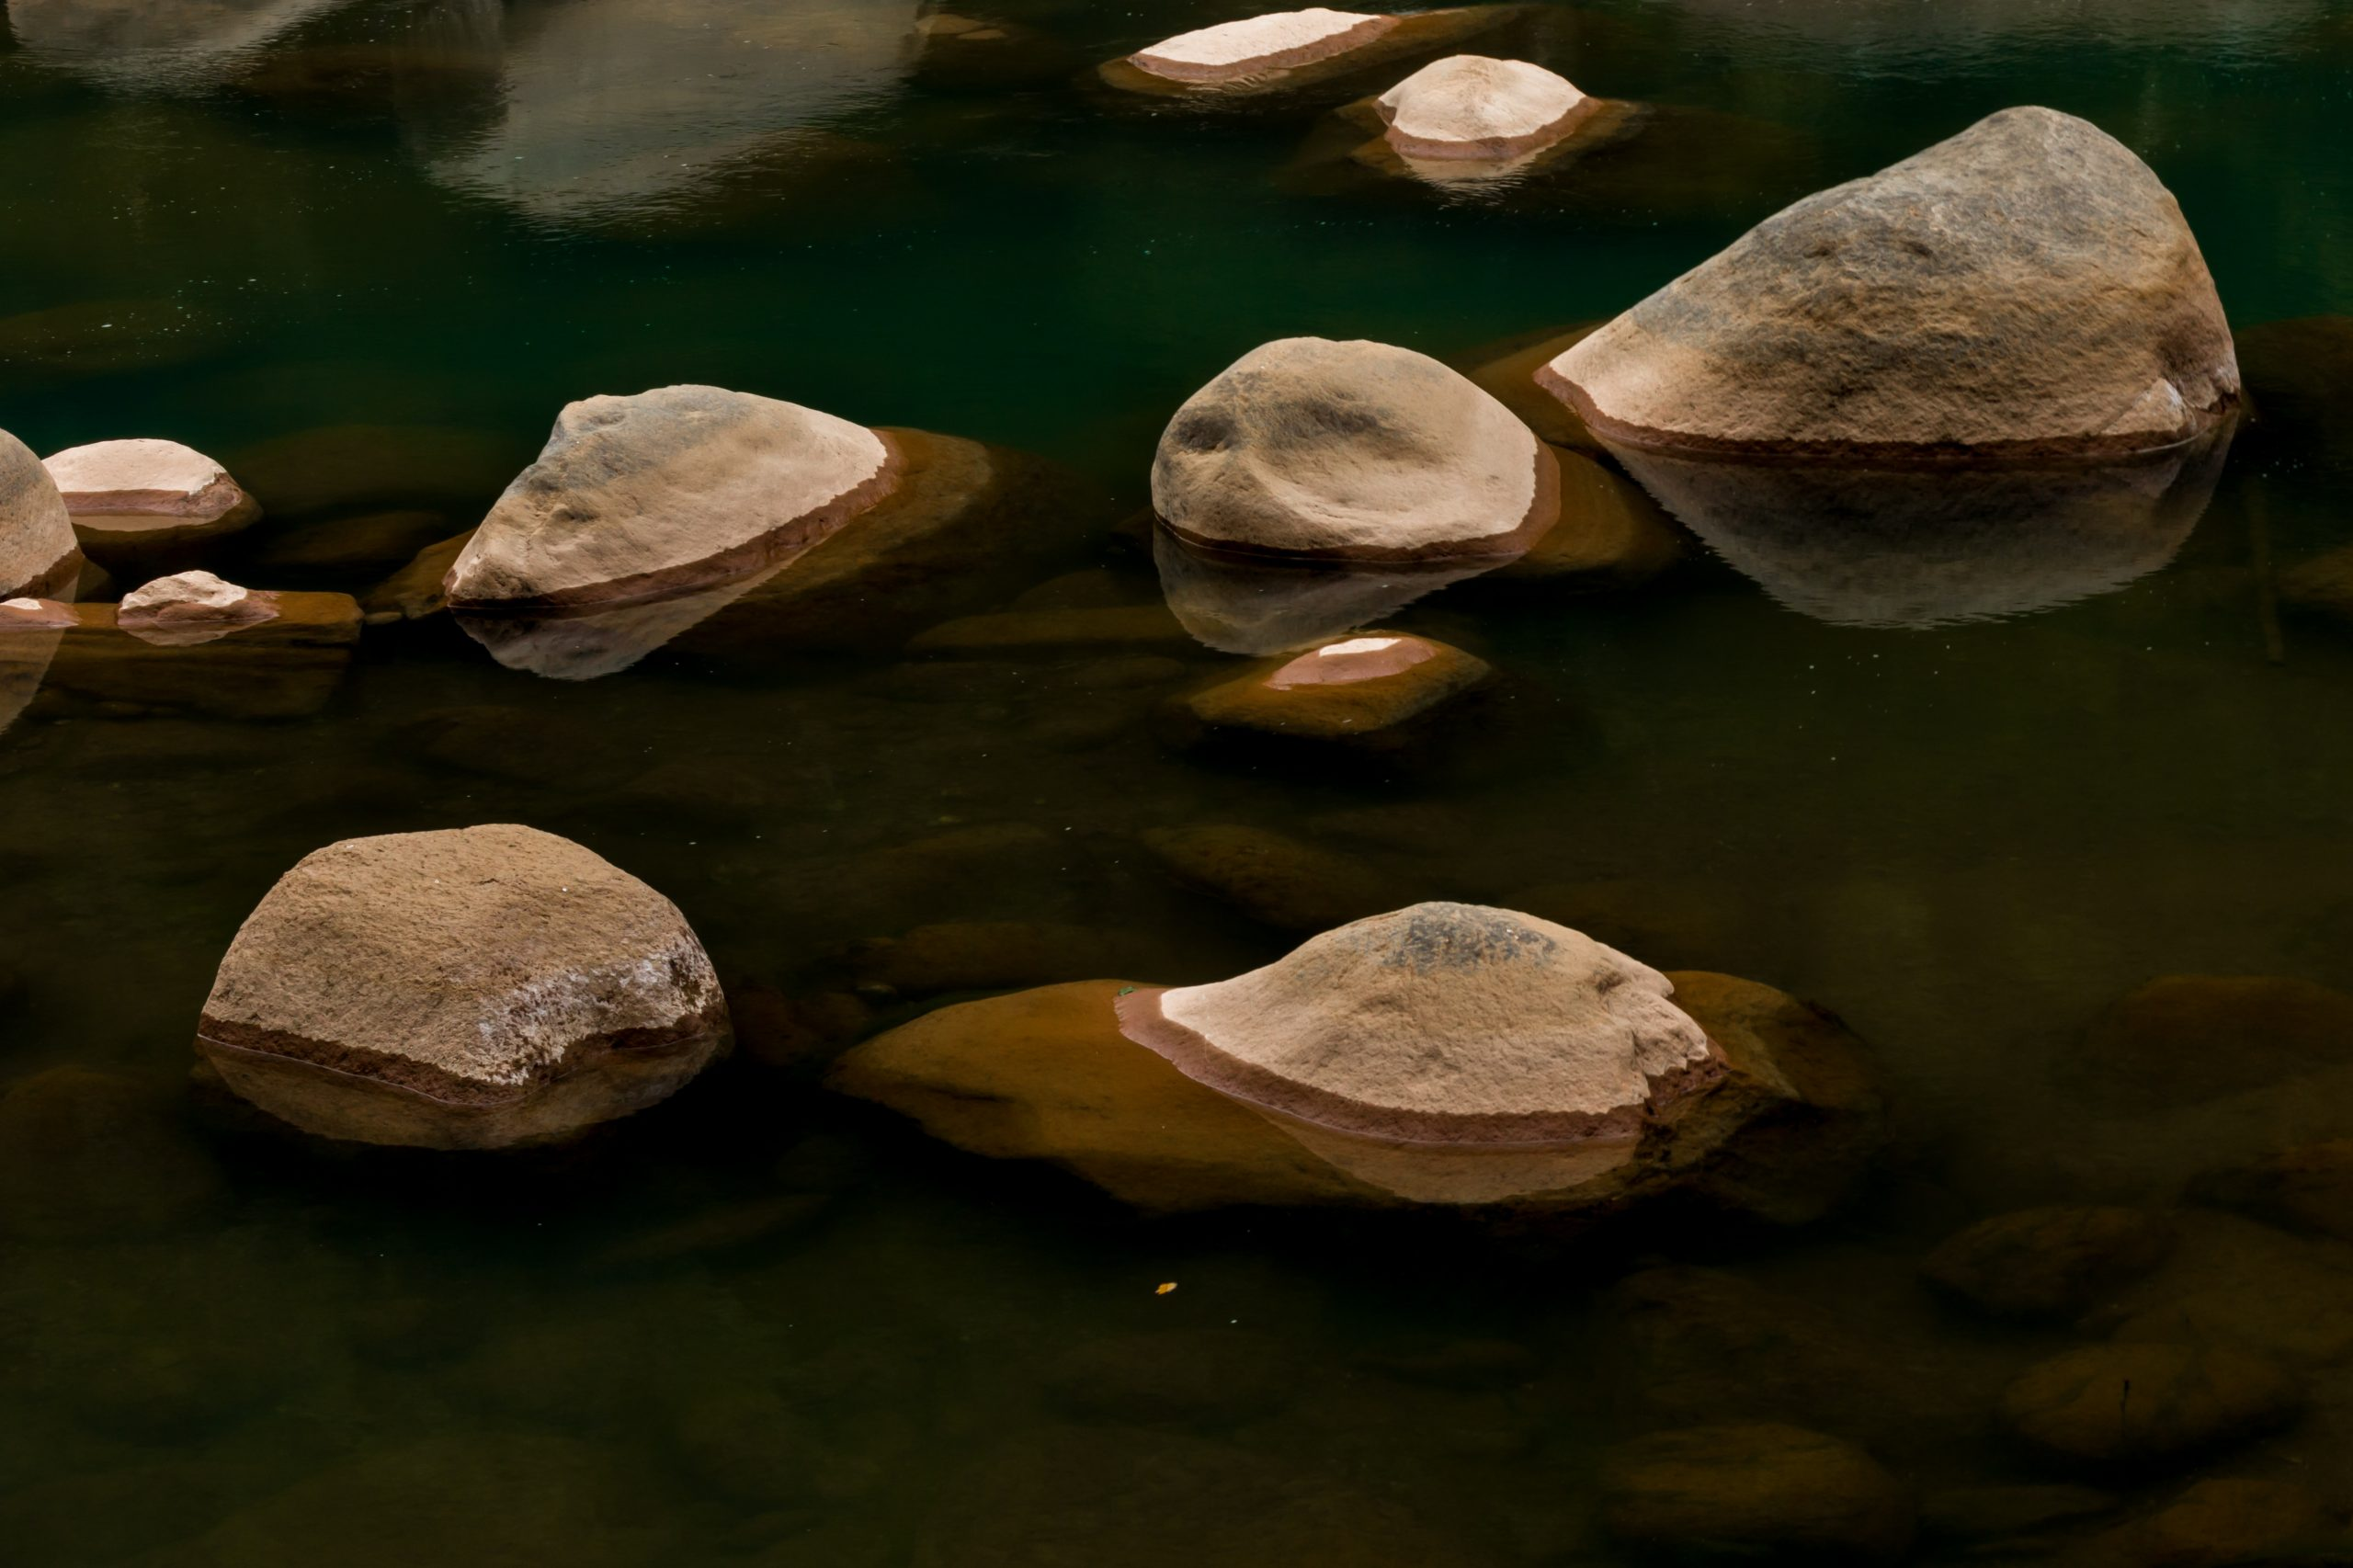 Stones in the river